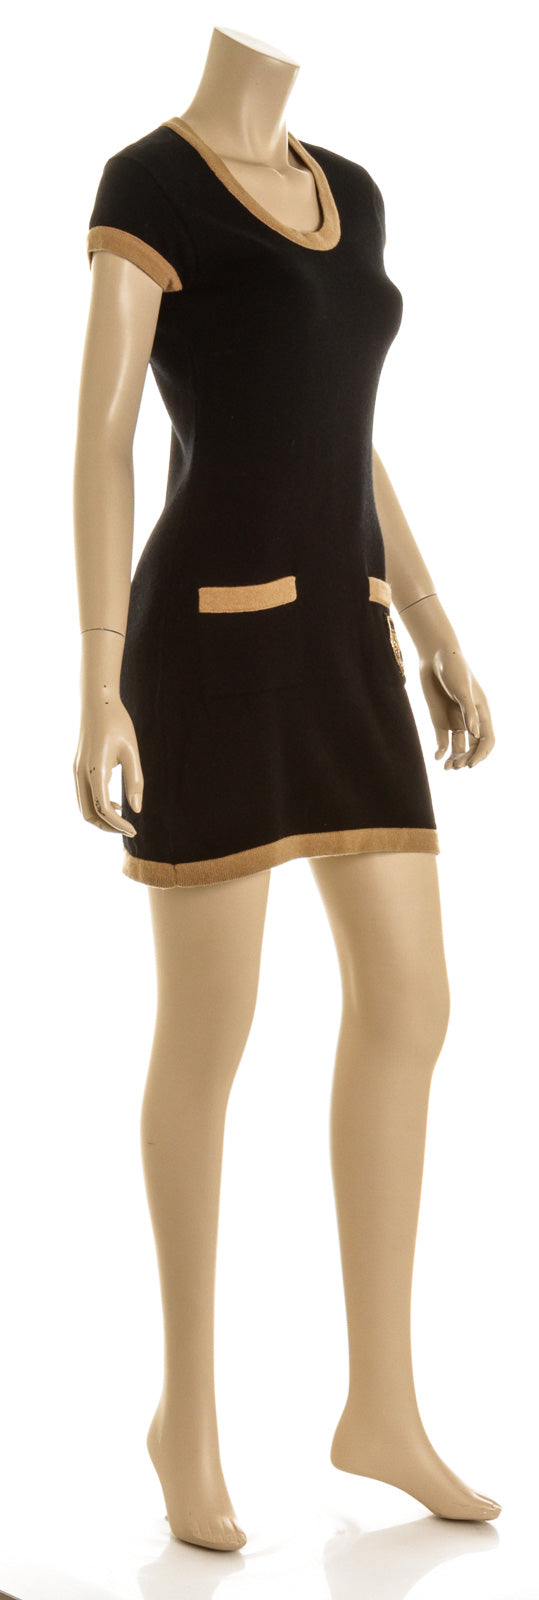 Chanel Coco Camellia Crest Black & Tan Cashmere Sweater Mini Dress (Size 38)